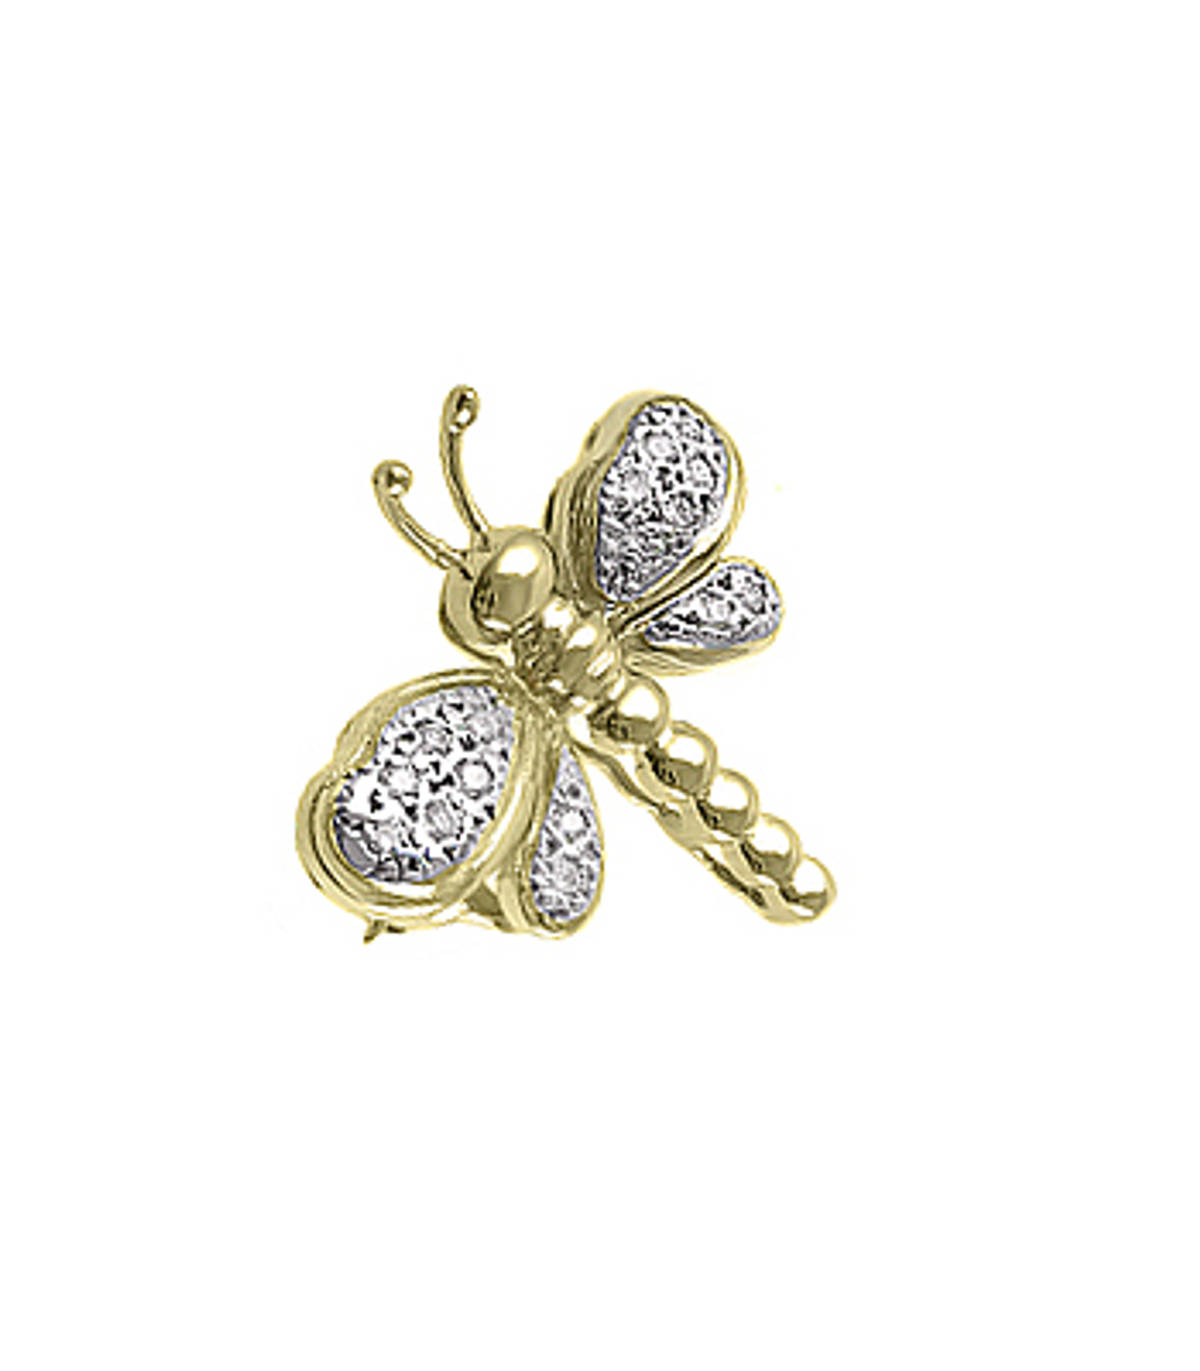 18k yellow gold with brilliant diamond dragonfly brooch Total diamond 0.16cts Width  2cm   Height  1.5cm Made in Ireland